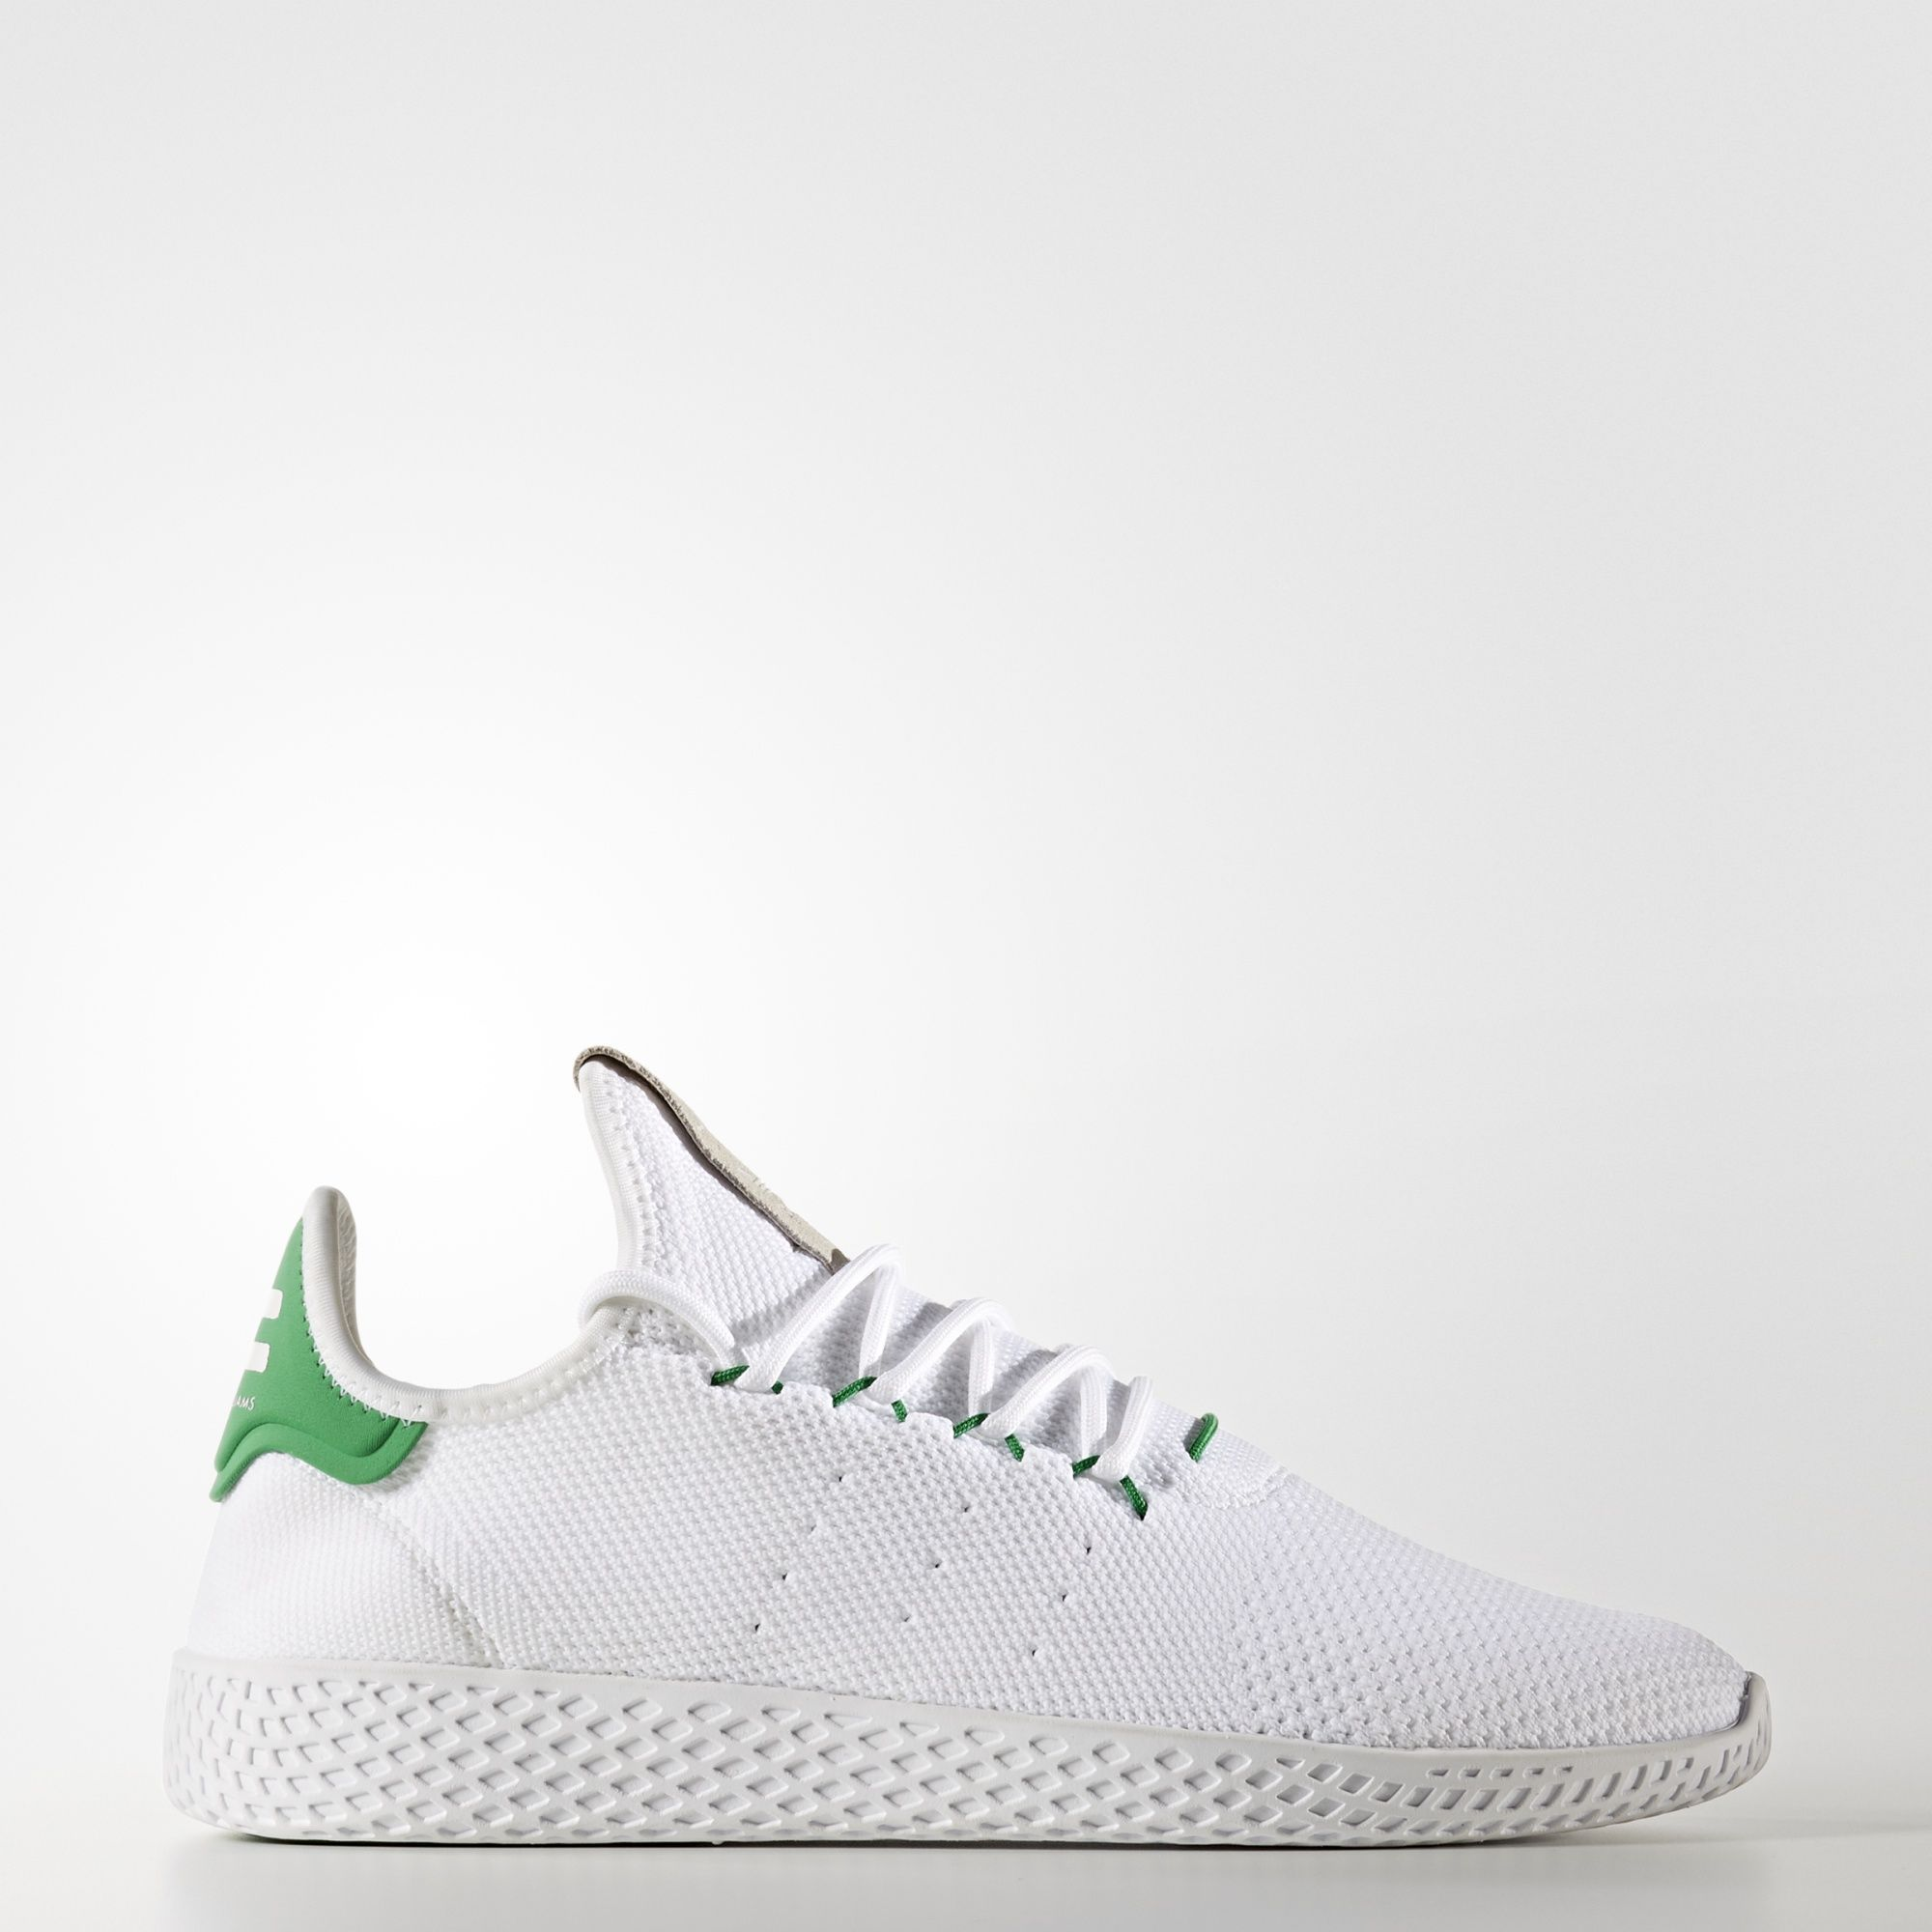 6db797d66e Pharrell Williams Tennis Hu Primeknit Shoes in 2019 | Sneakers and ...